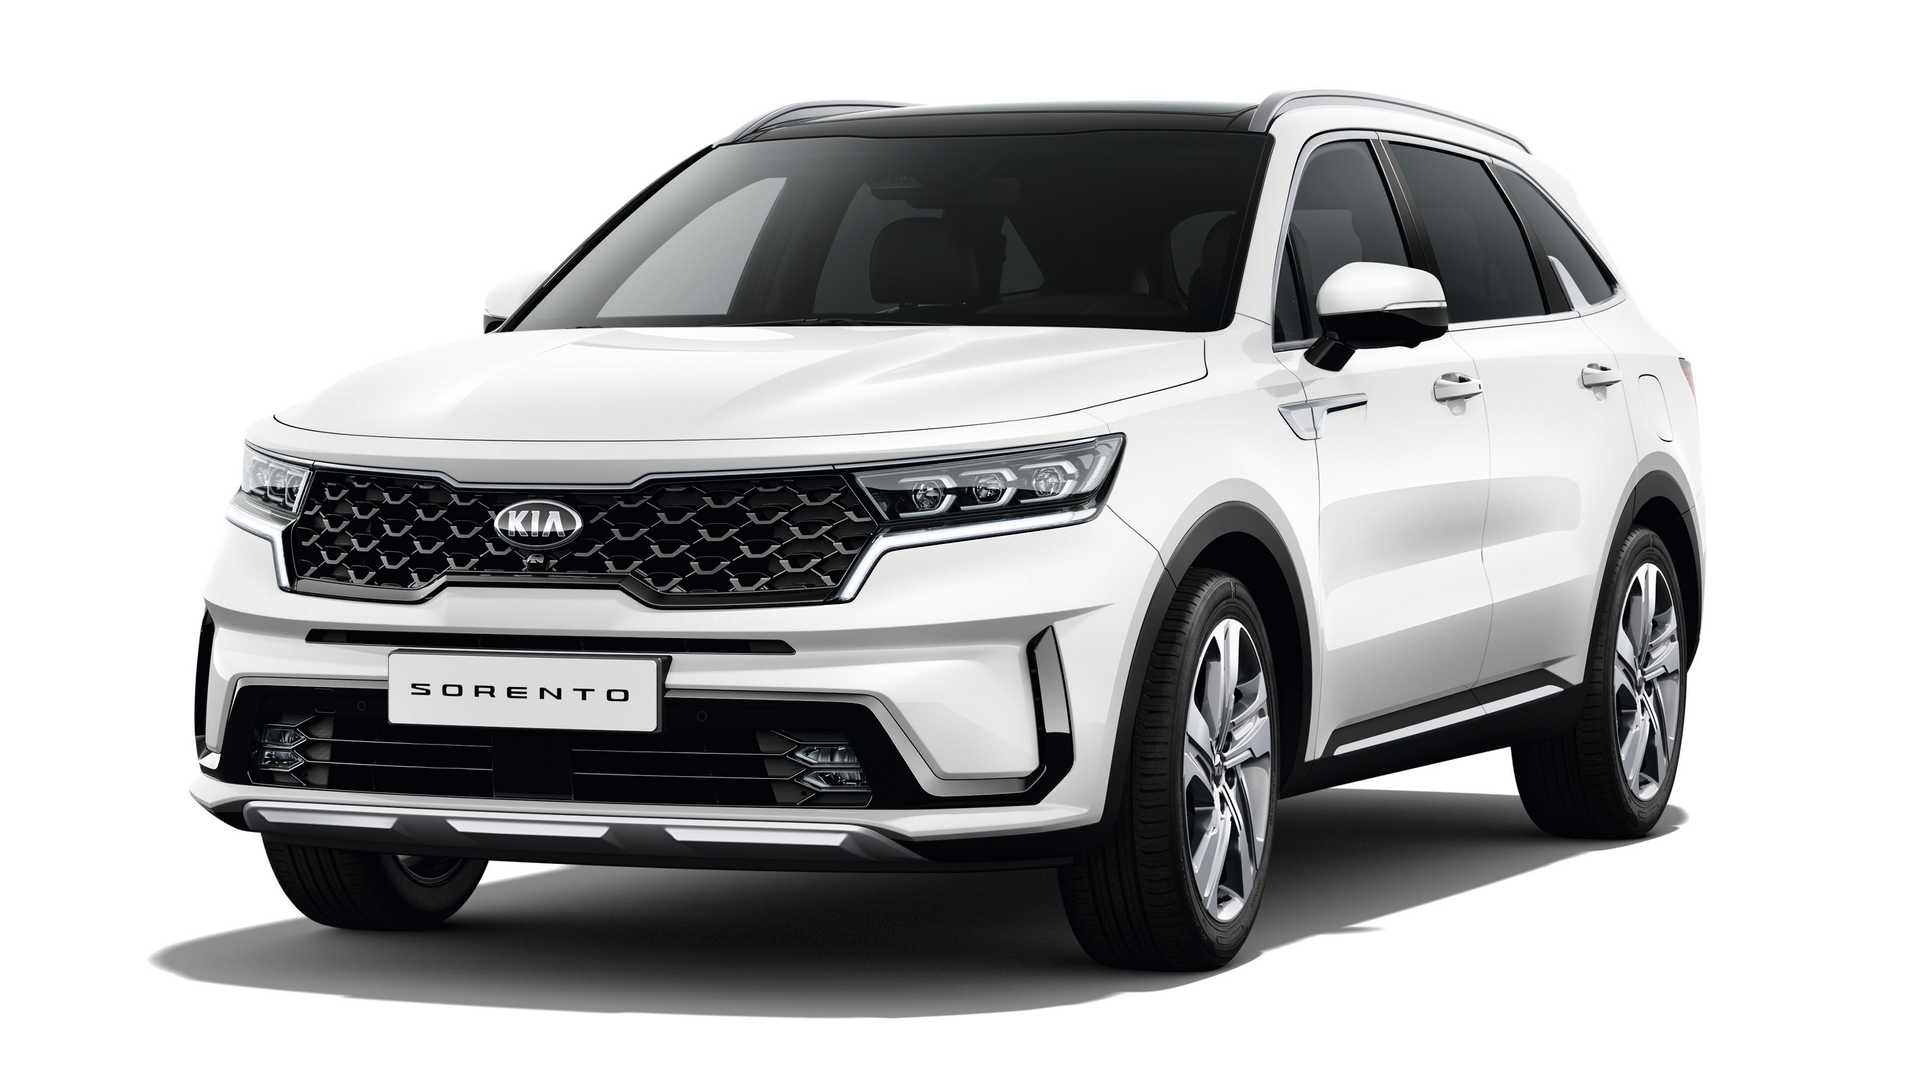 """The Korean automaker reports that the new Sorento SUV comes based on a brand-new architecture and gains 35 mm (1.4"""") of wheelbase along with 10 mm (0.2"""" of height)."""